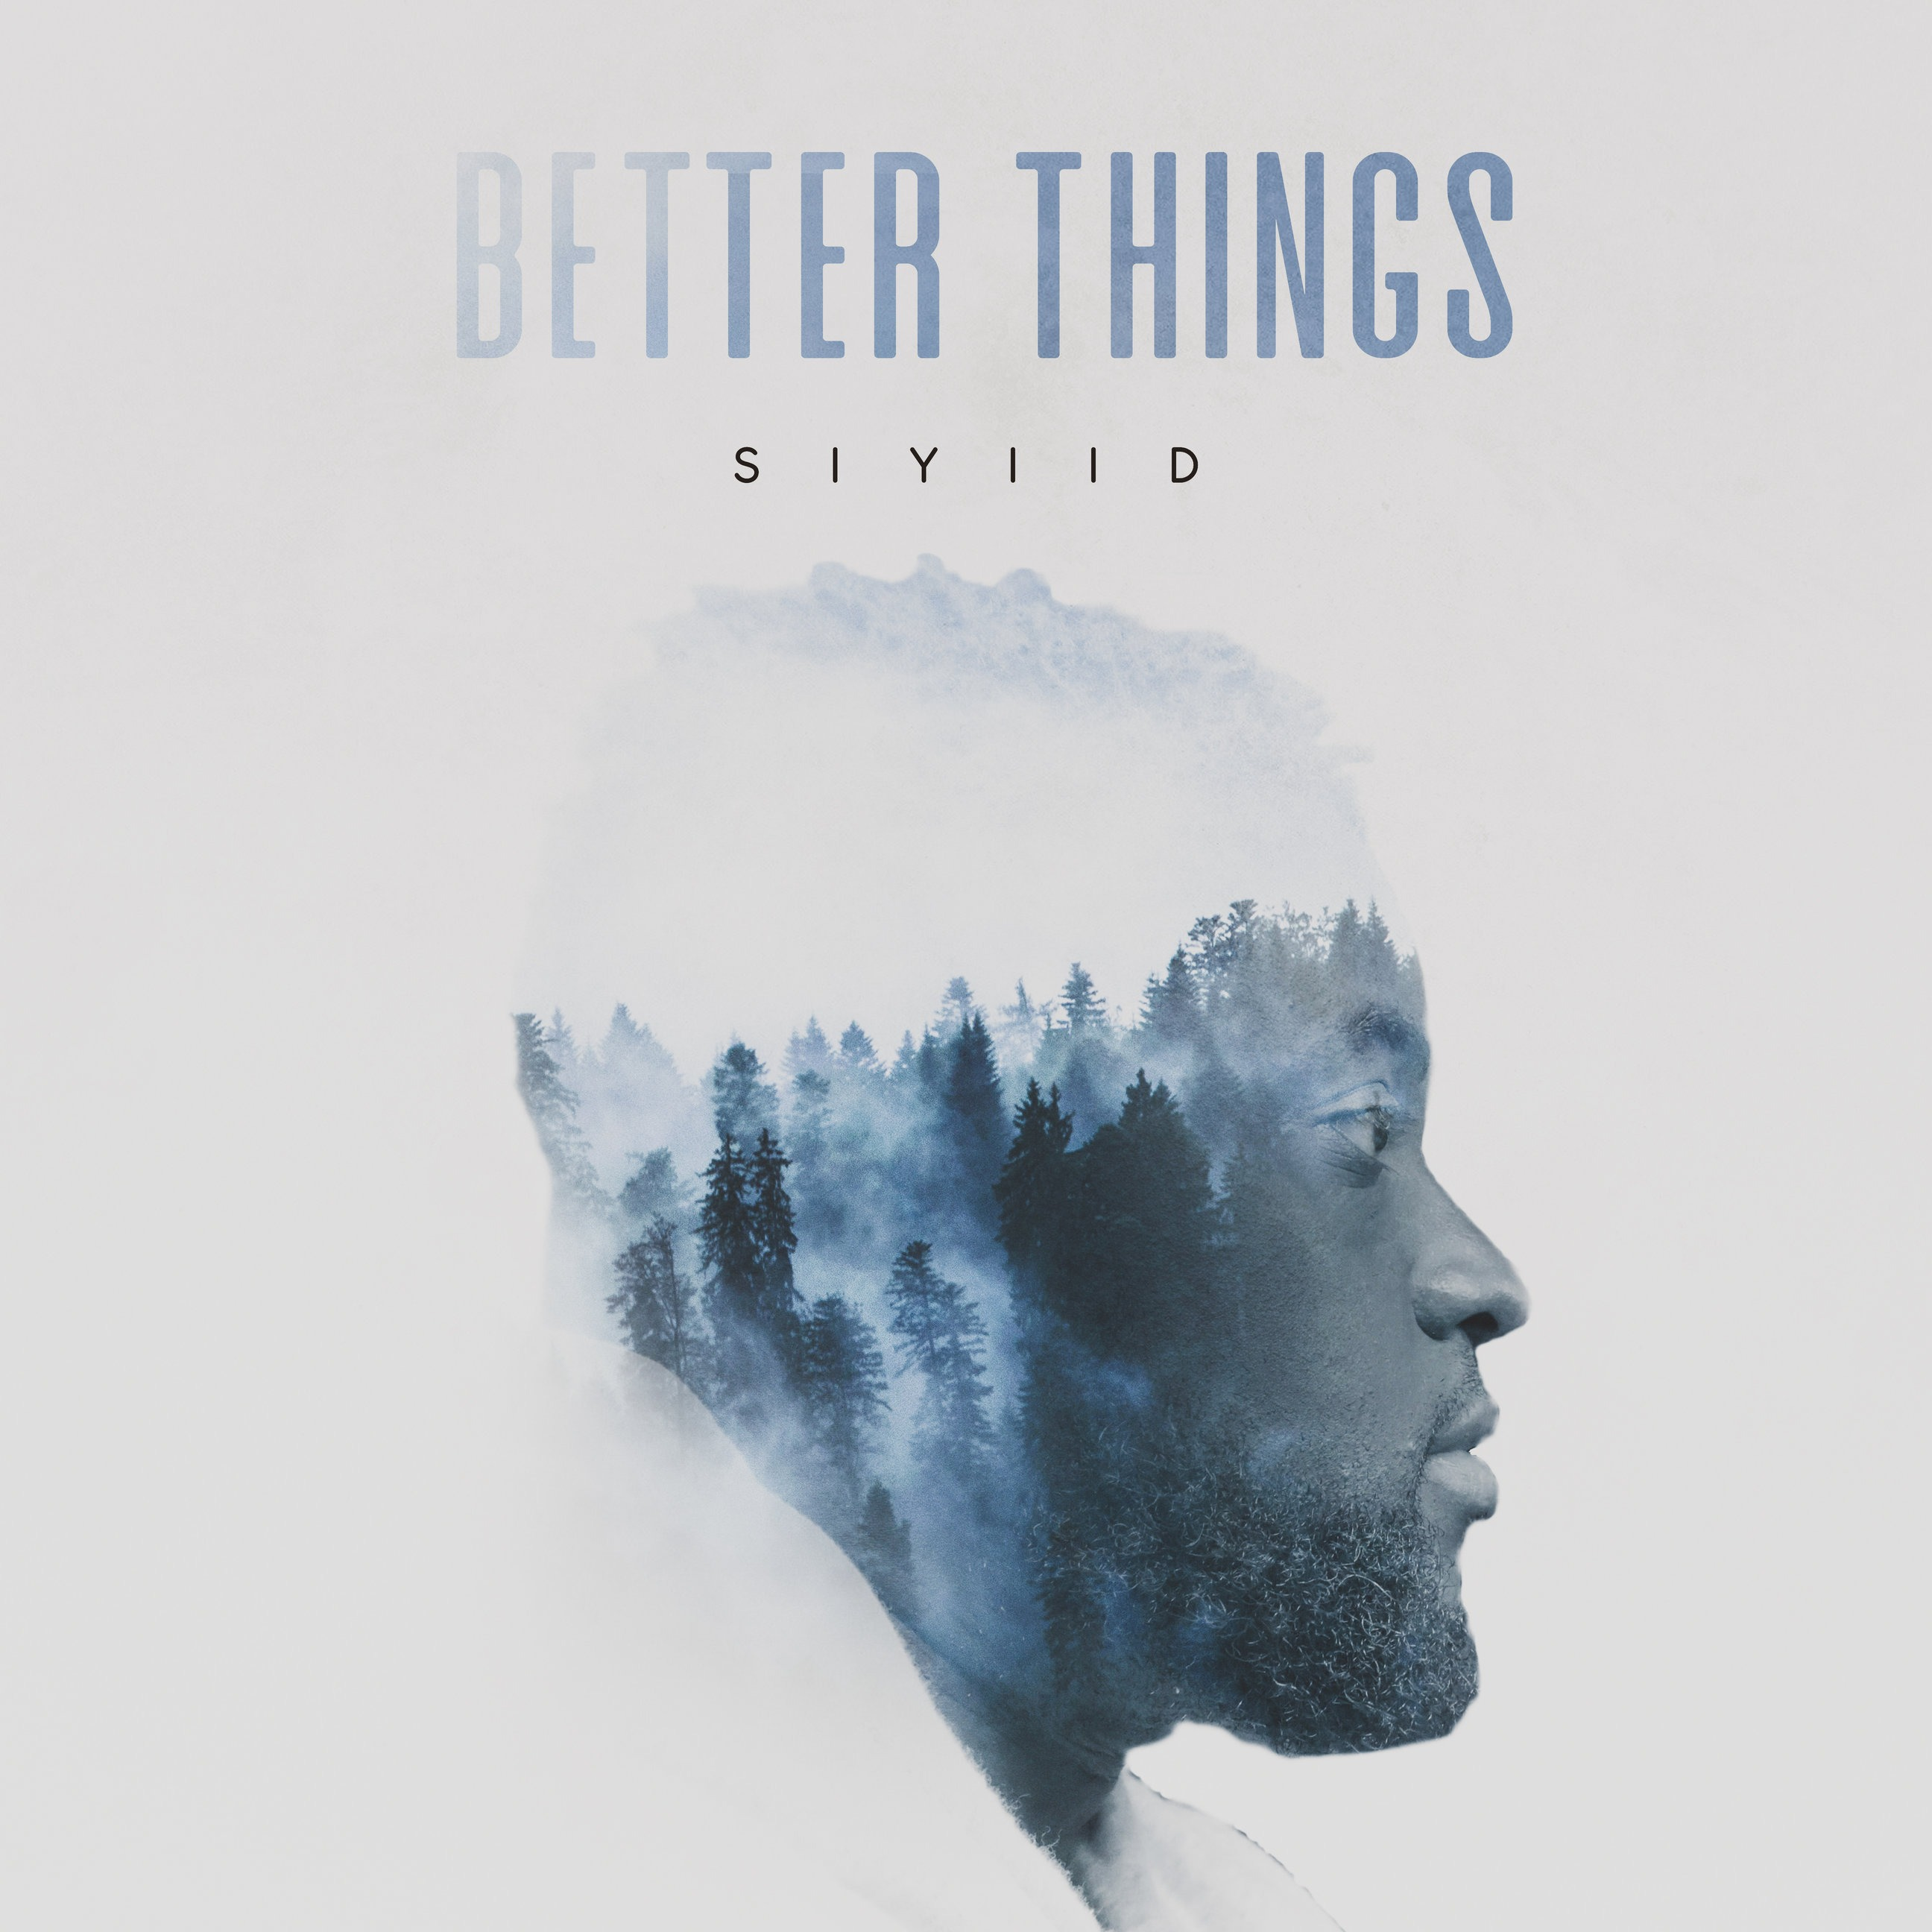 Better Things - Siyiid